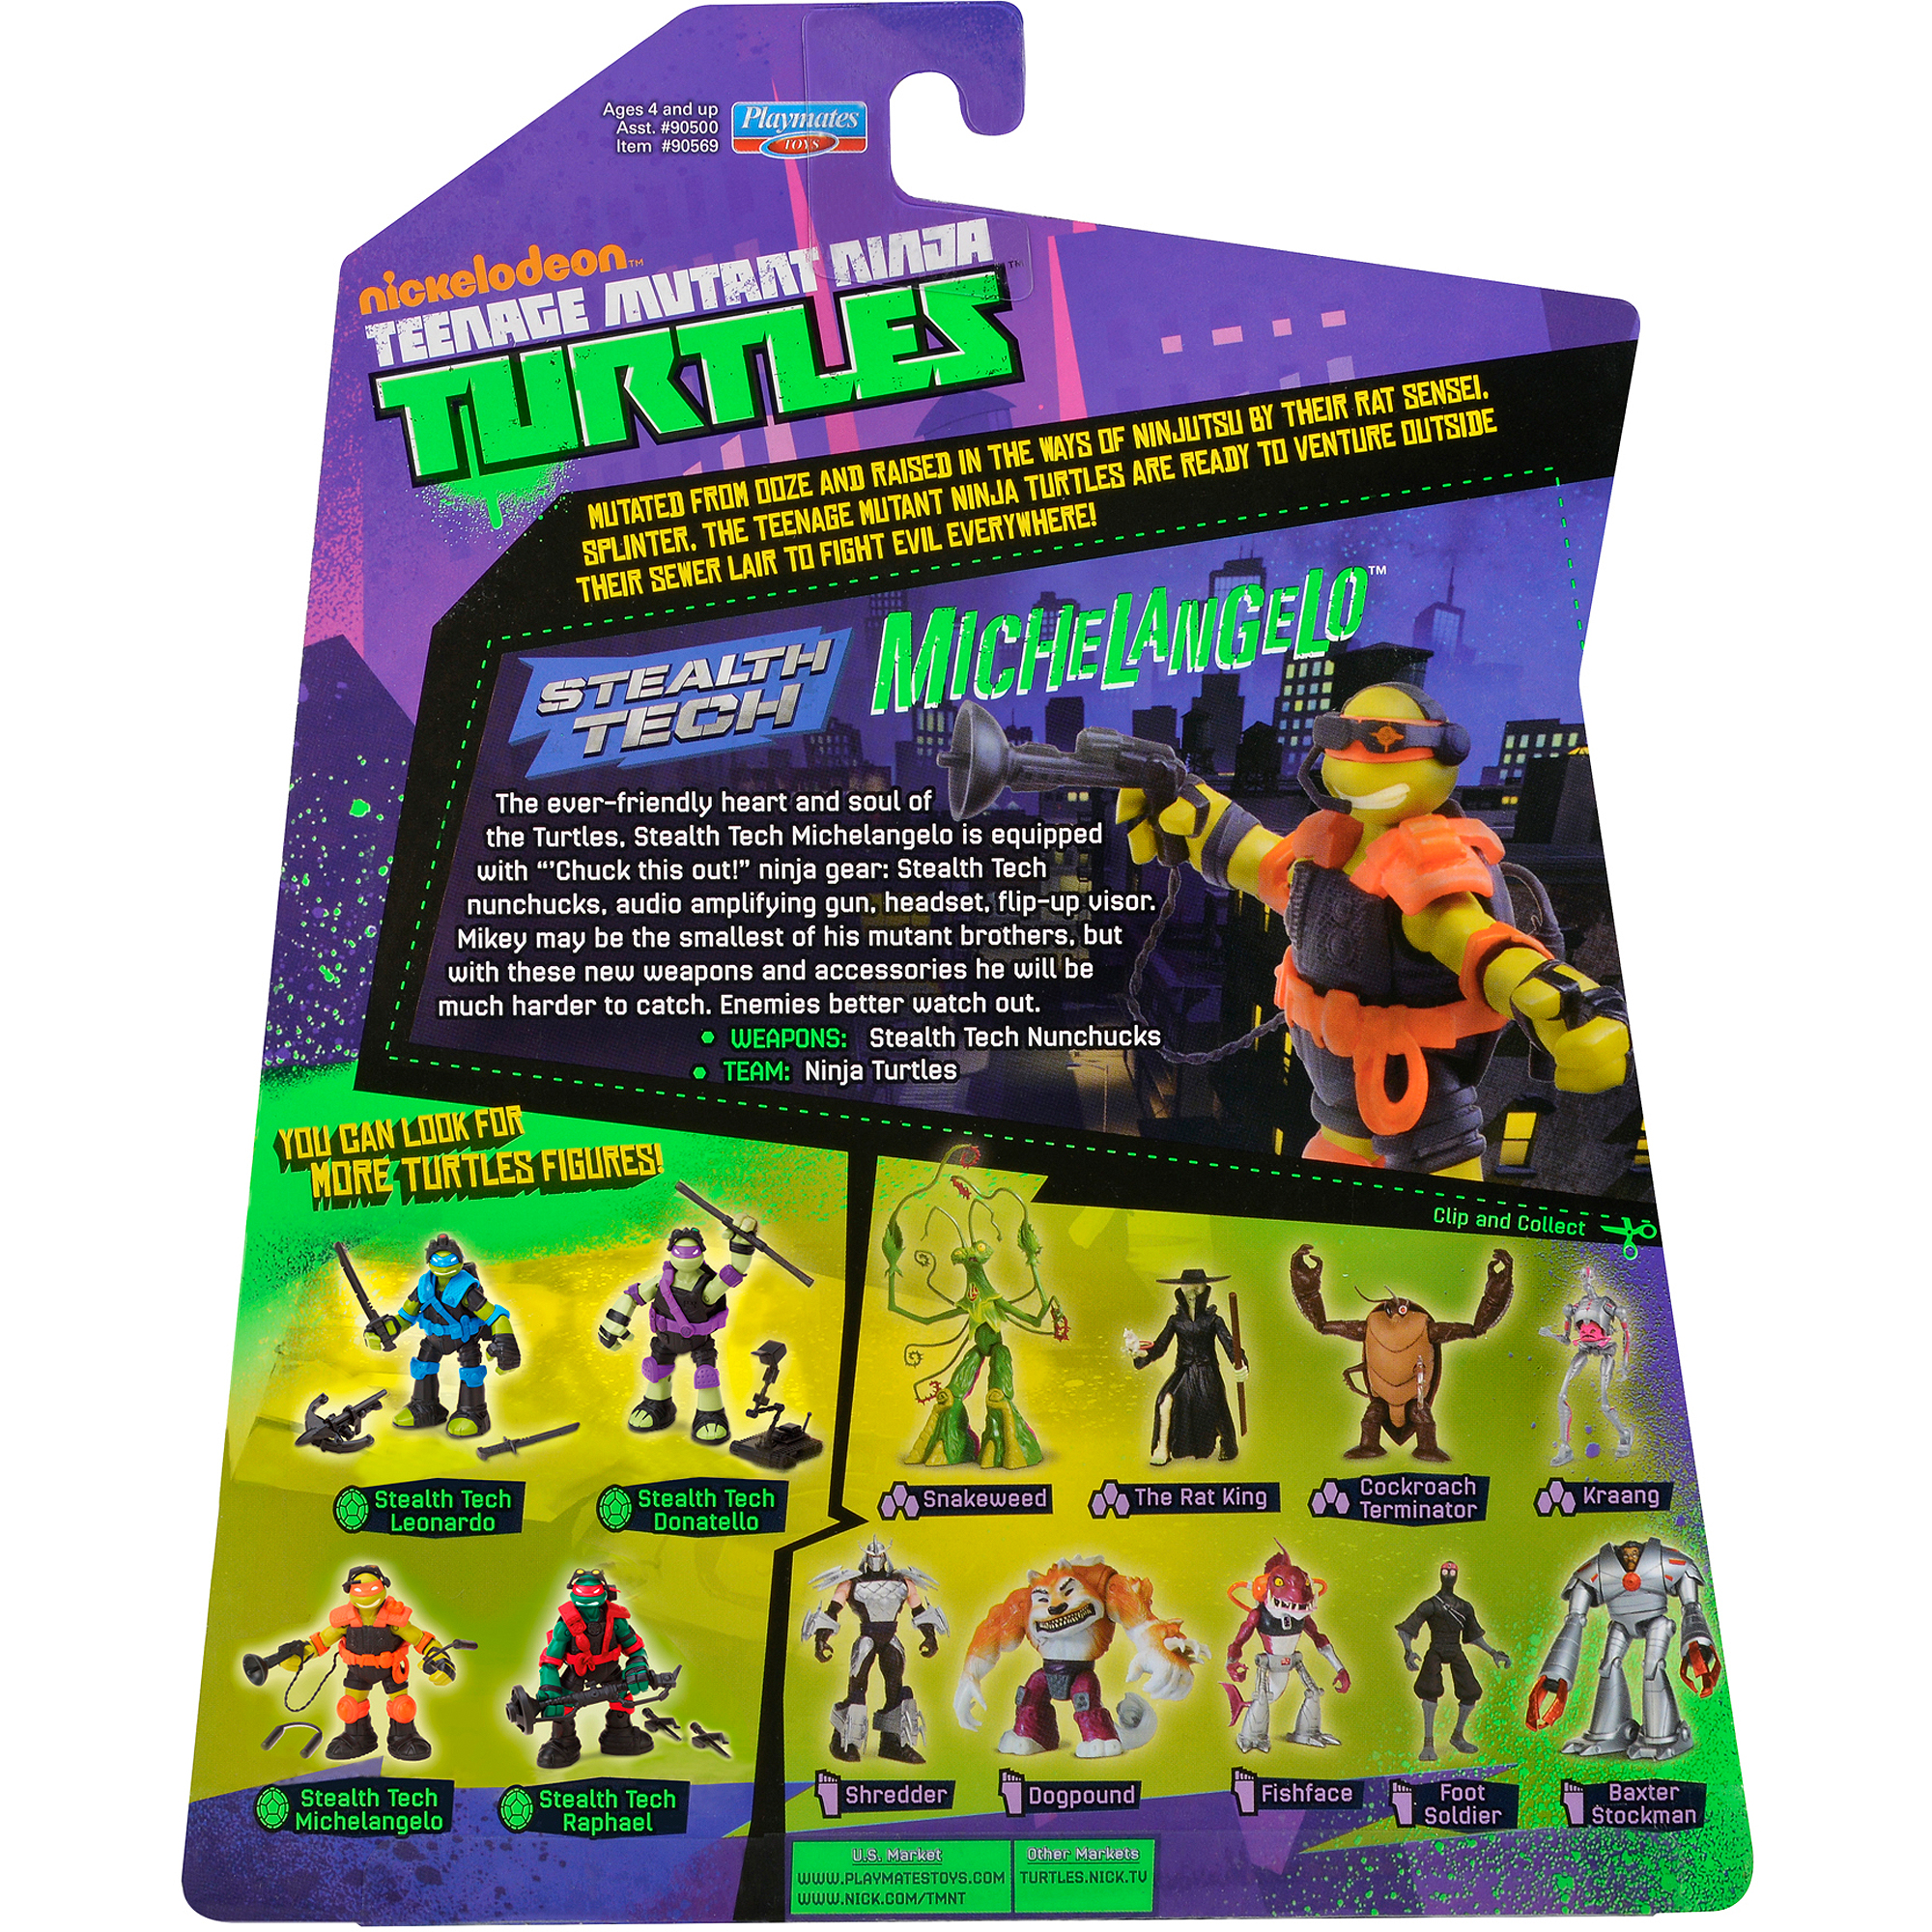 Teenage Mutant Ninja Turtles Stealth Tech Michelangelo Action Figure